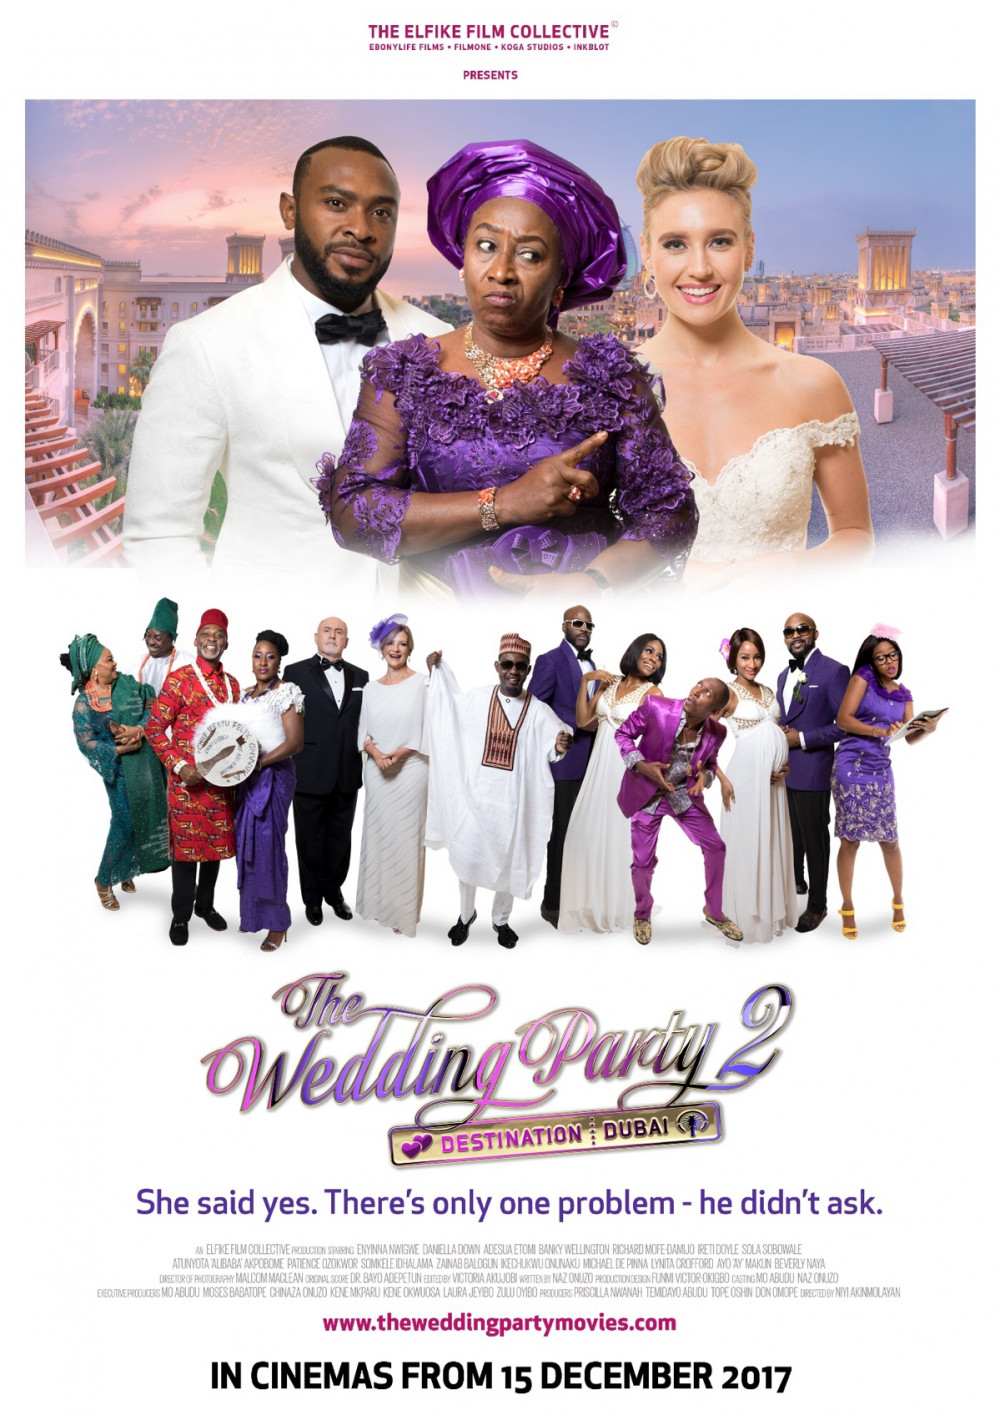 The Wedding Party 2